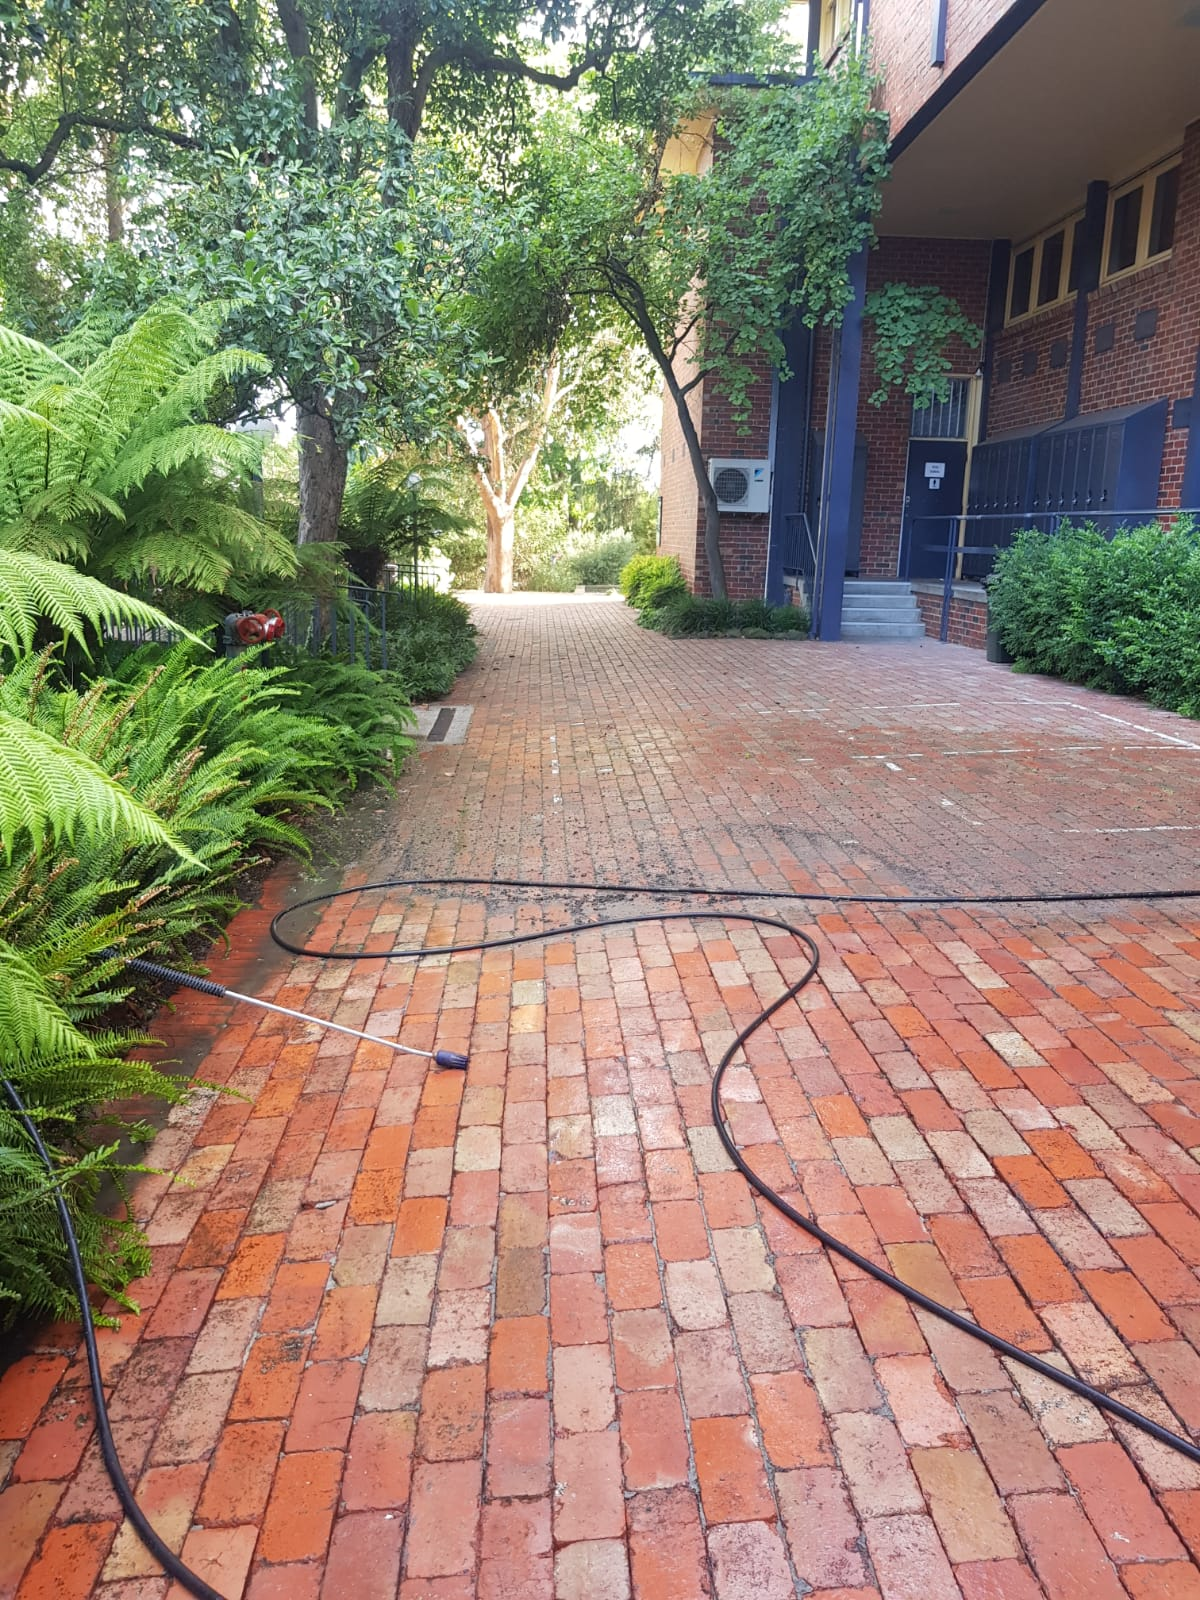 Fintona girls school pressure wash cleaning (2)